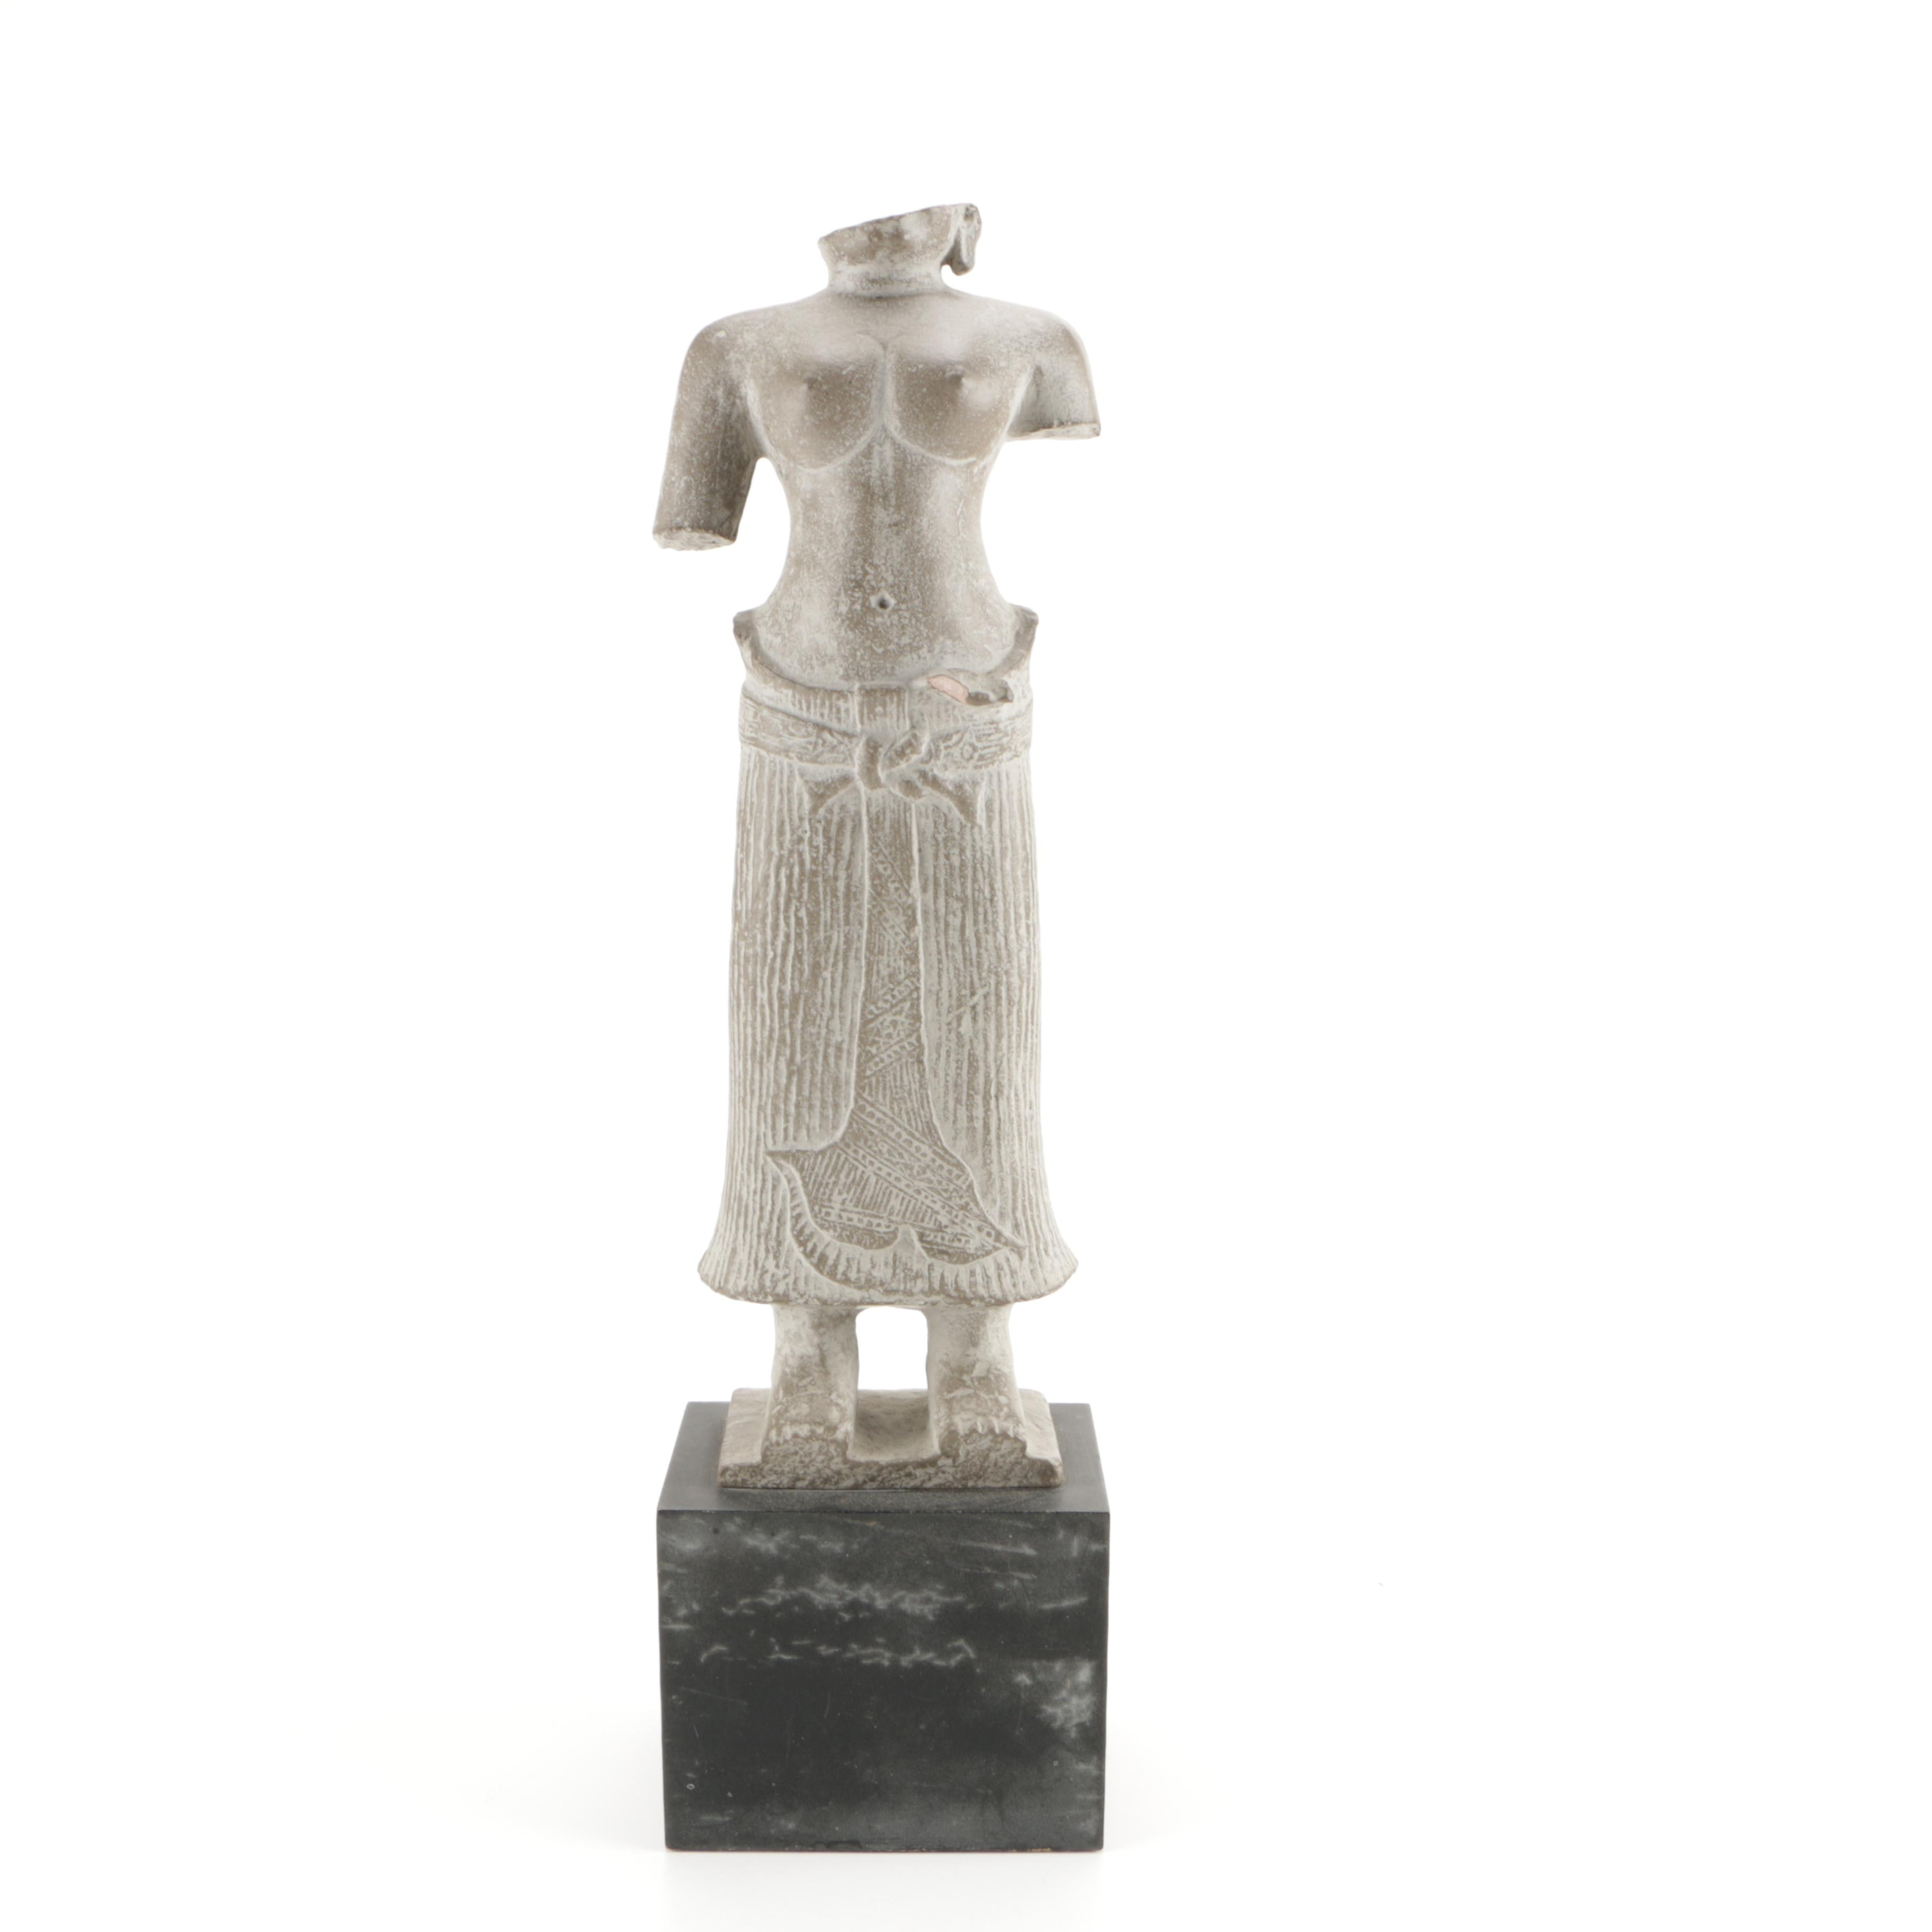 Stone Statue of a Woman